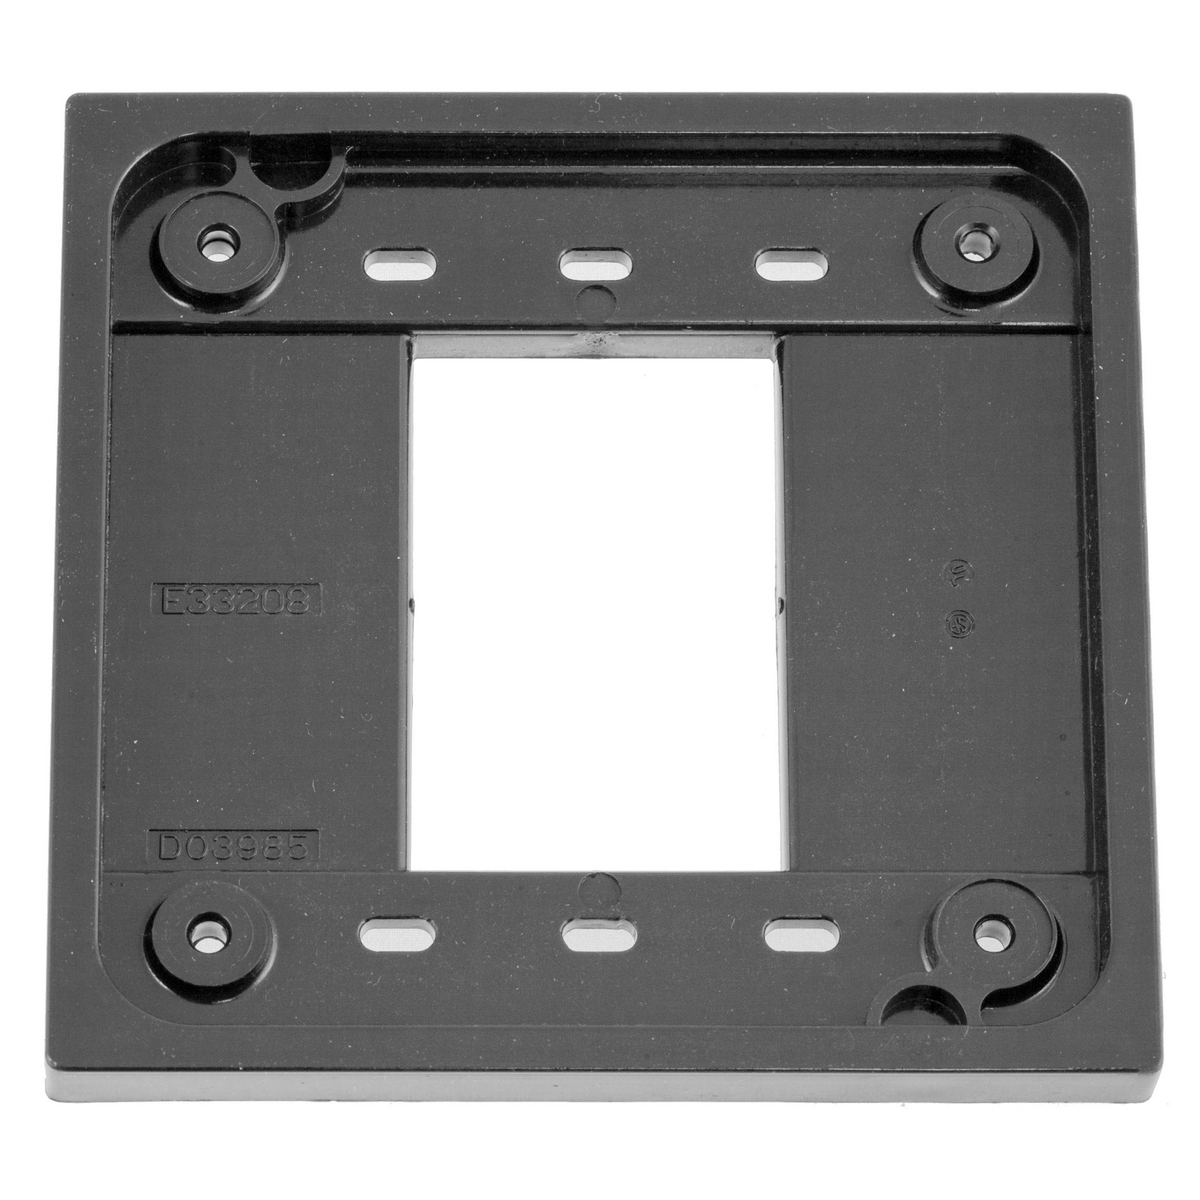 Hubbell HBL4APGYADAPTER PLATE, 4-PLEX, GY